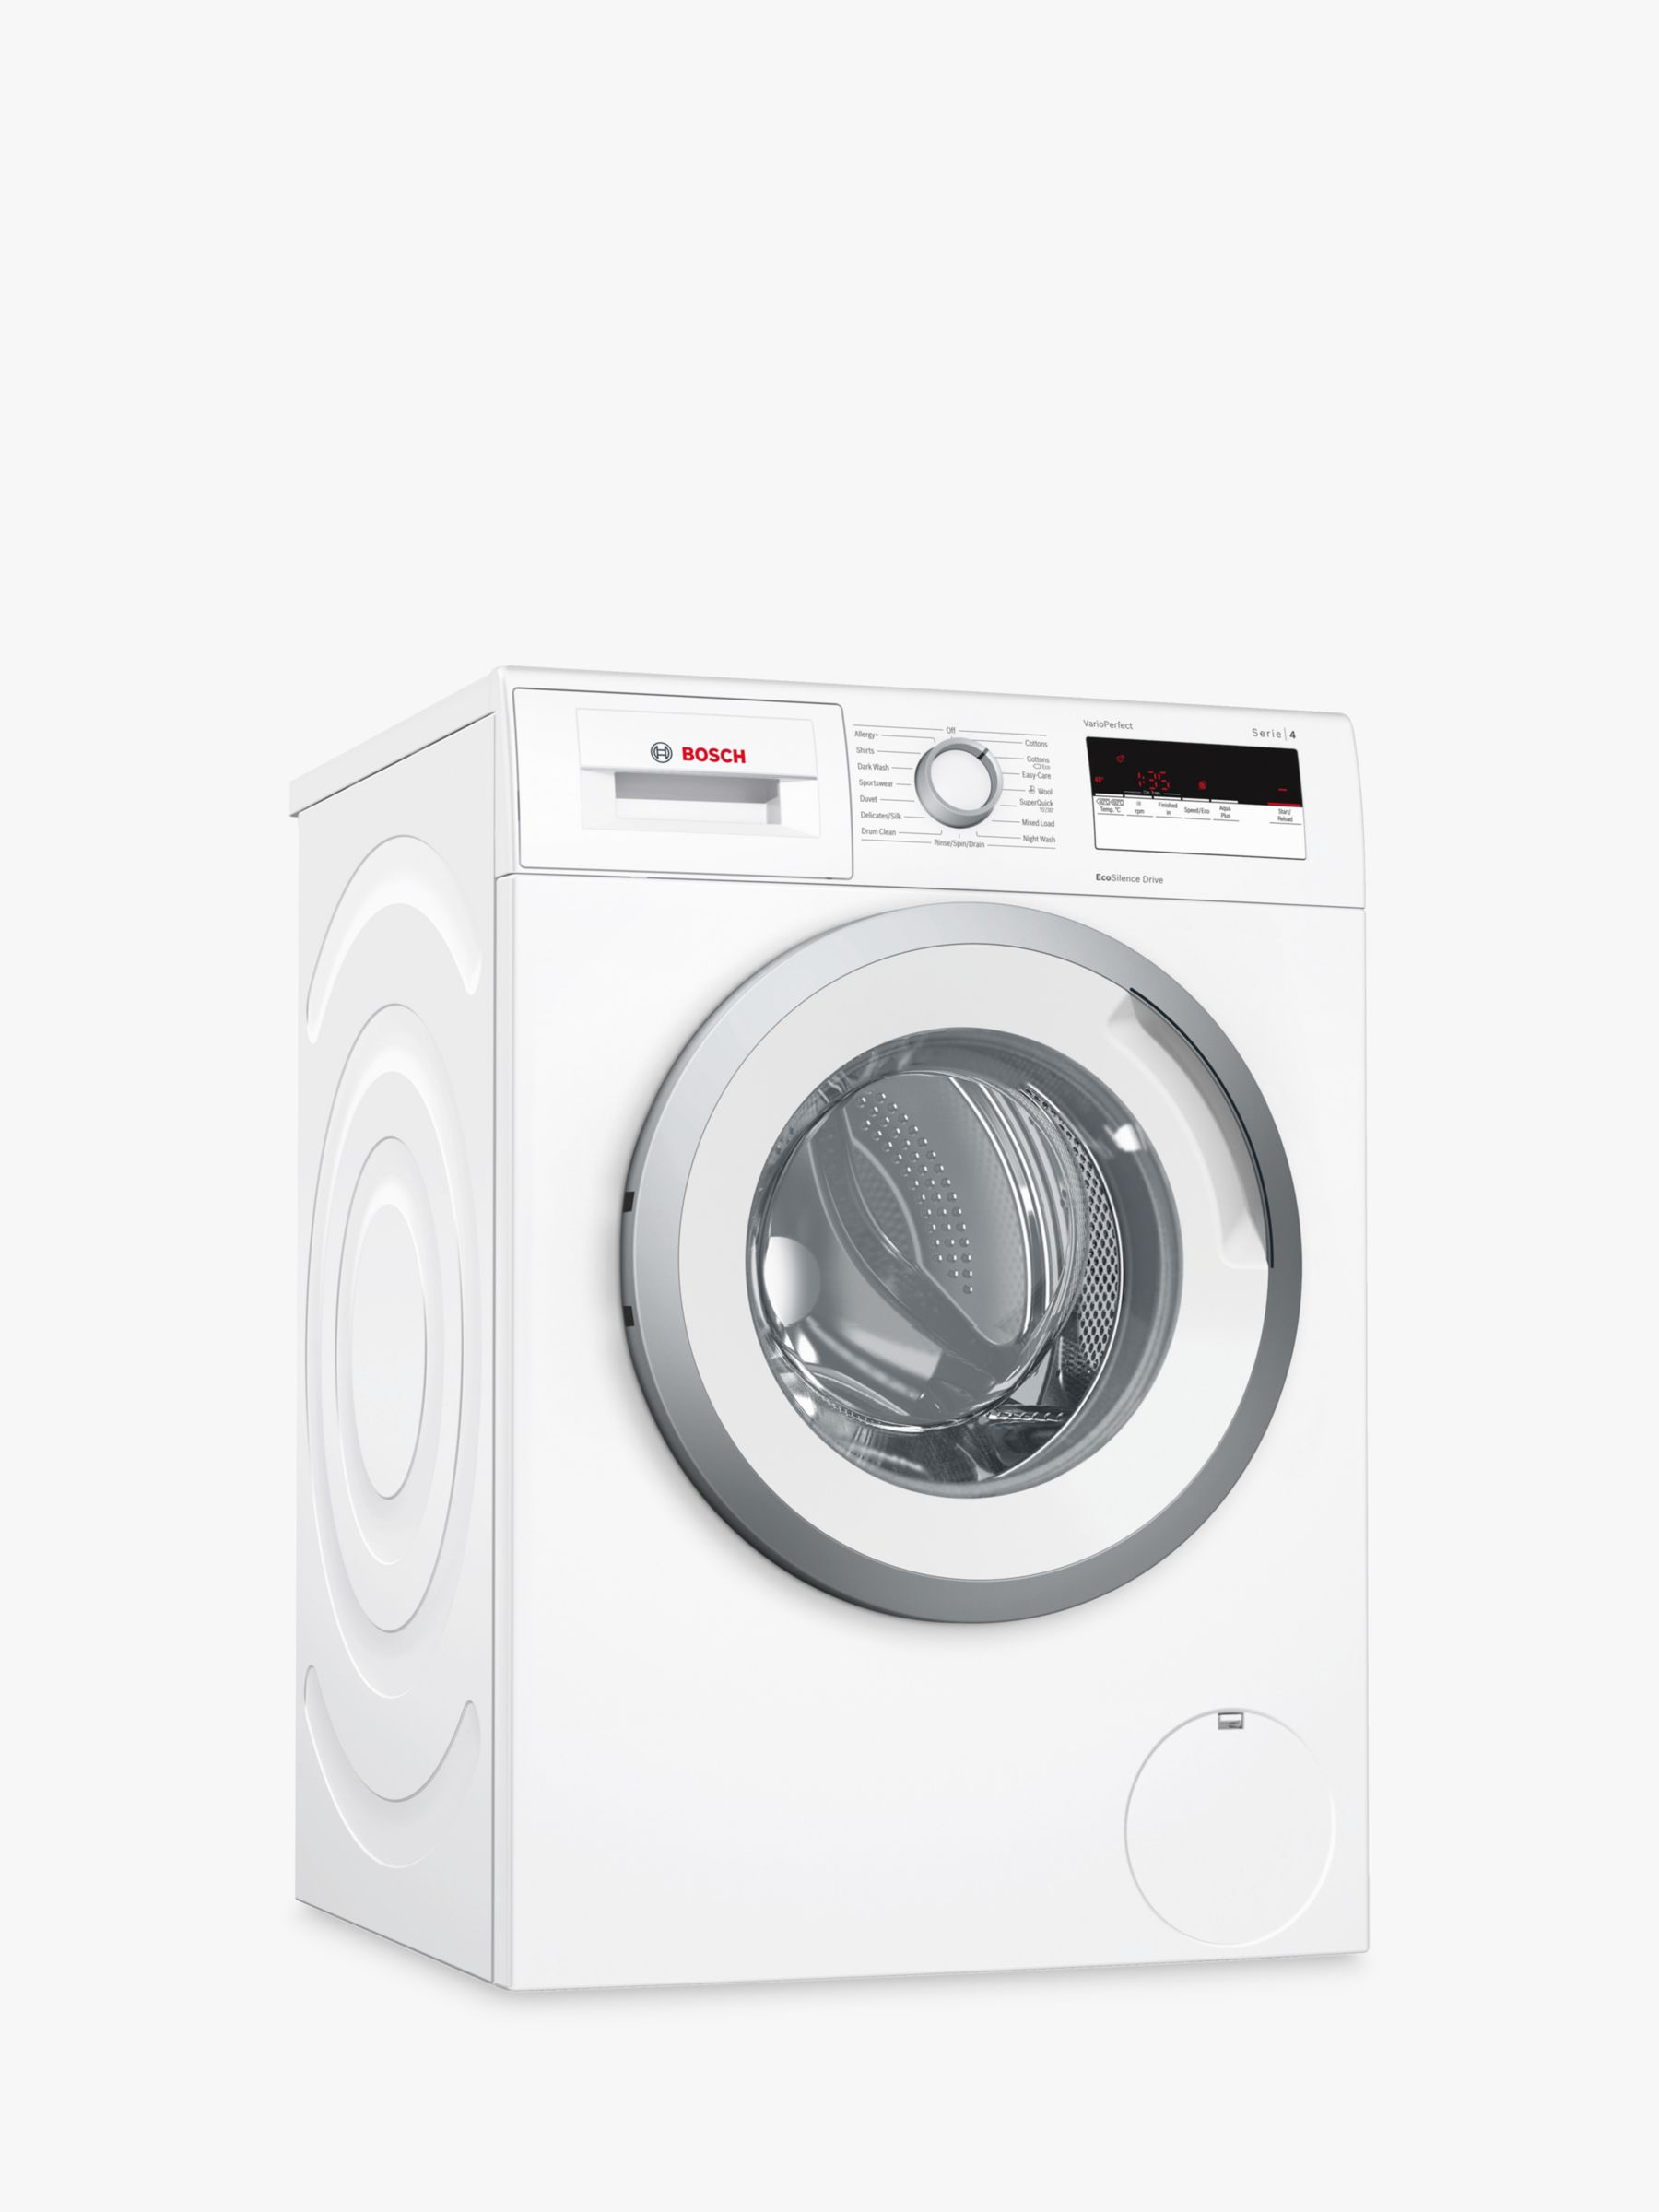 Bosch Bosch WAN24108GB Freestanding Washing Machine, 8kg Load, A+++ Energy Rating, 1200RPM Spin, White